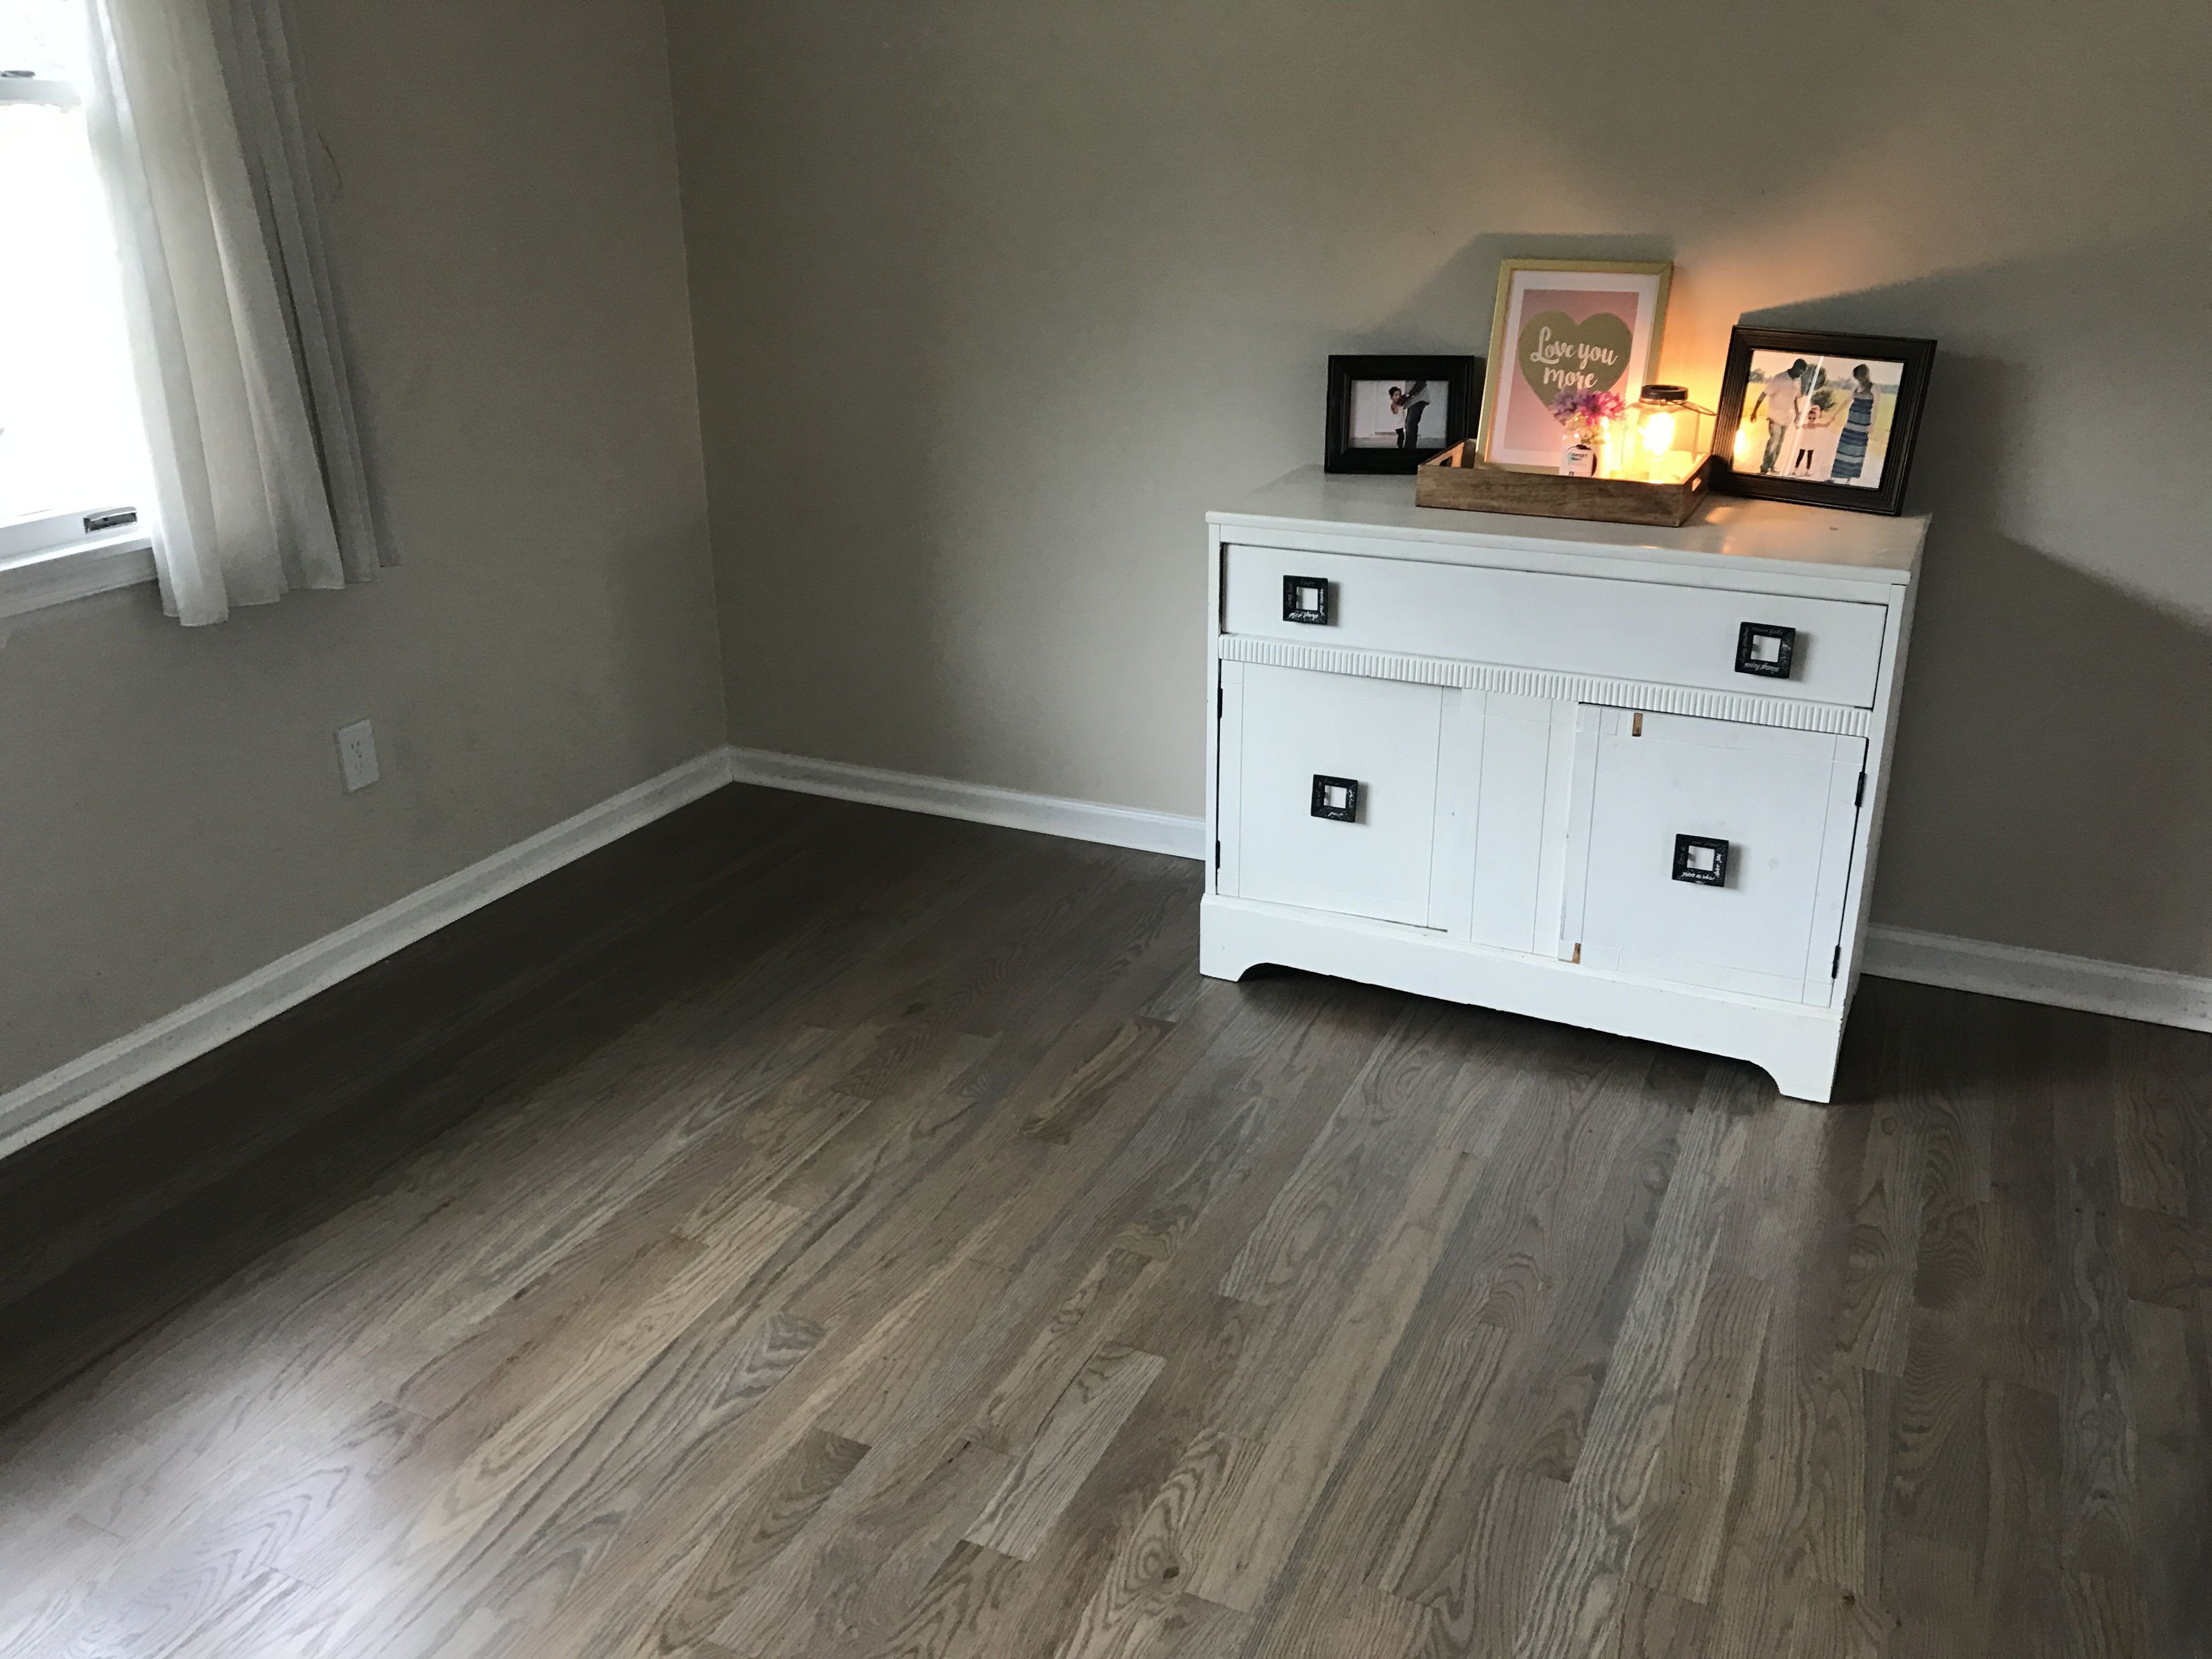 hardwood floor installers cincinnati of floors to your home reviews our coastal farmhouse weathered gray inside floors to your home reviews our coastal farmhouse weathered gray hardwood floors white oak